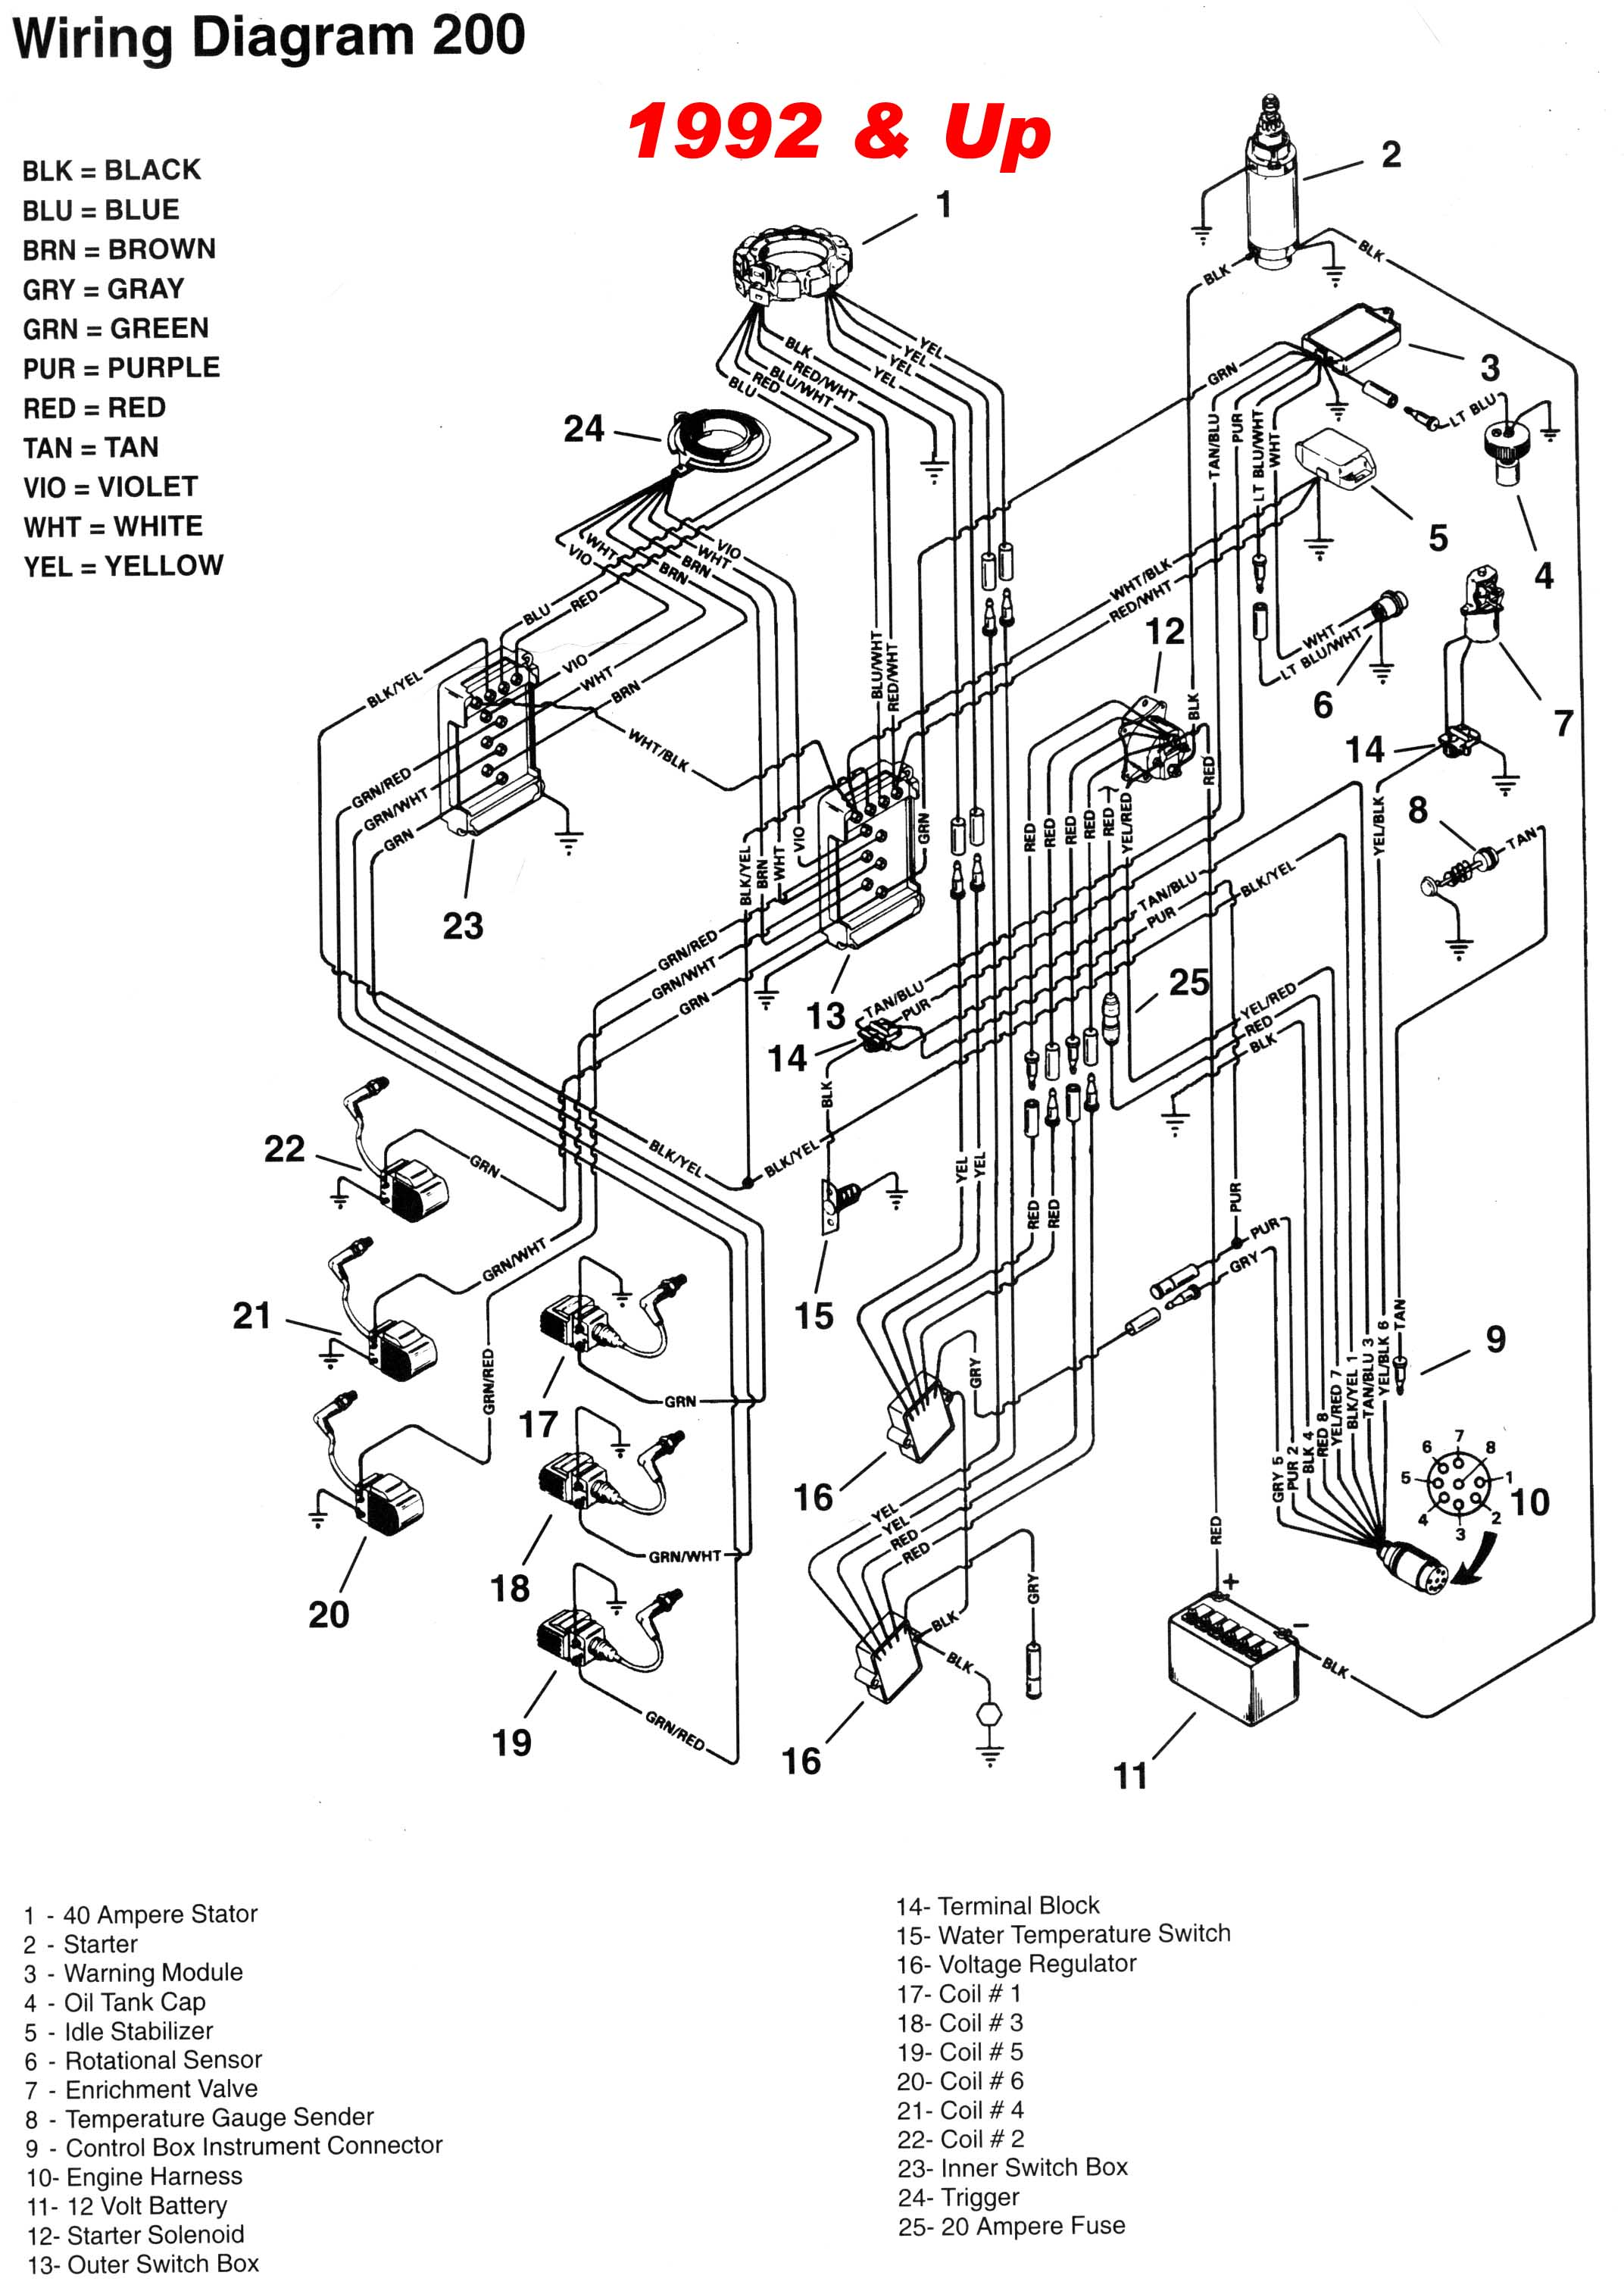 2000 Yamaha 50 Hp 4 Stroke Wiring Diagram Great Installation Of Qt 40 2 Outboard Free Picture Rh 7 9 12 1813weddingbarn Com Tw200